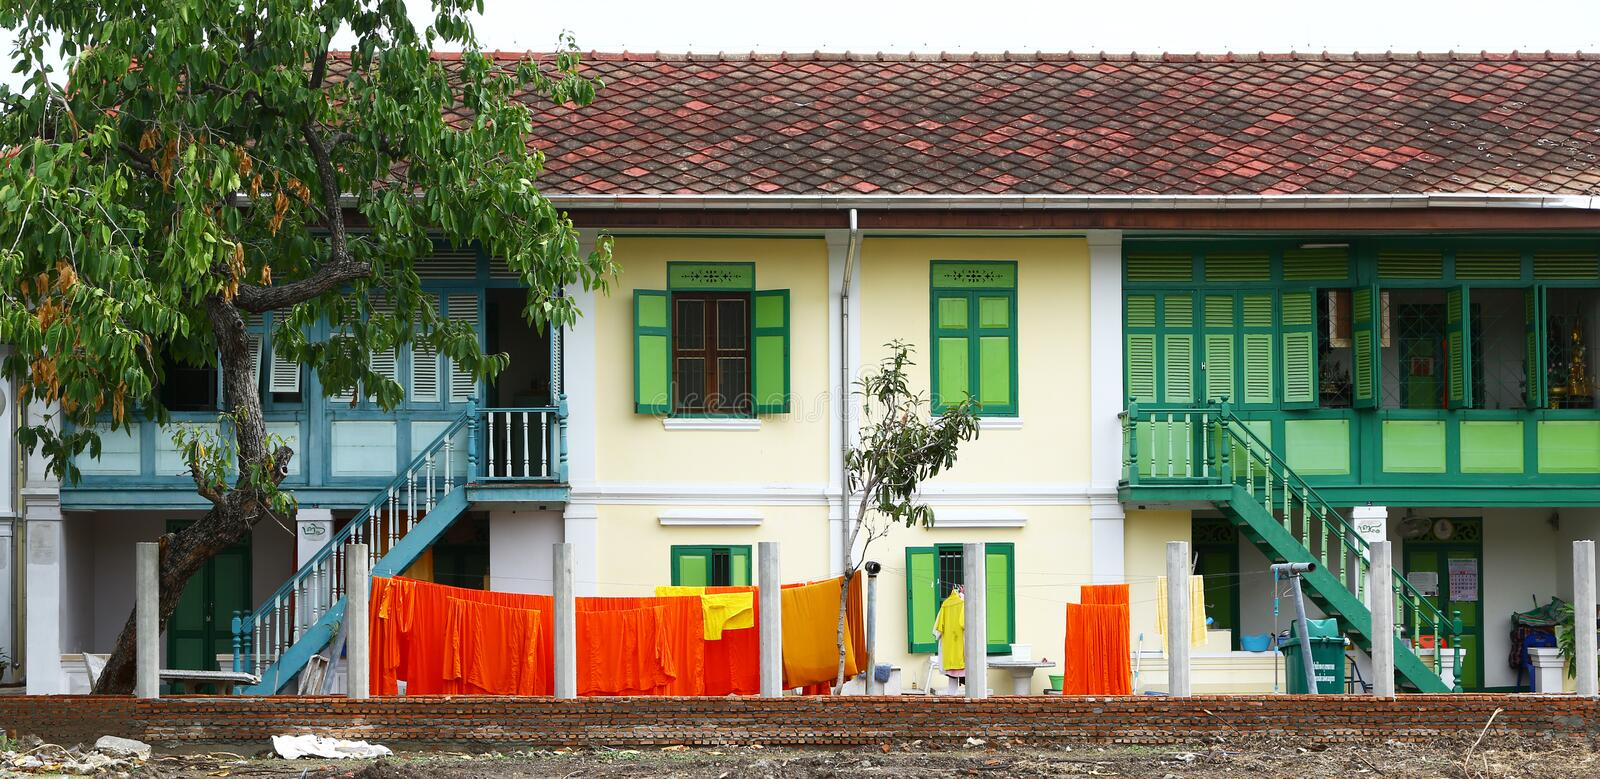 Houses of buddhist monks in Bangkok, Thailand. Their laundry, made of bright orange dresses, is hanging out to dry stock photos